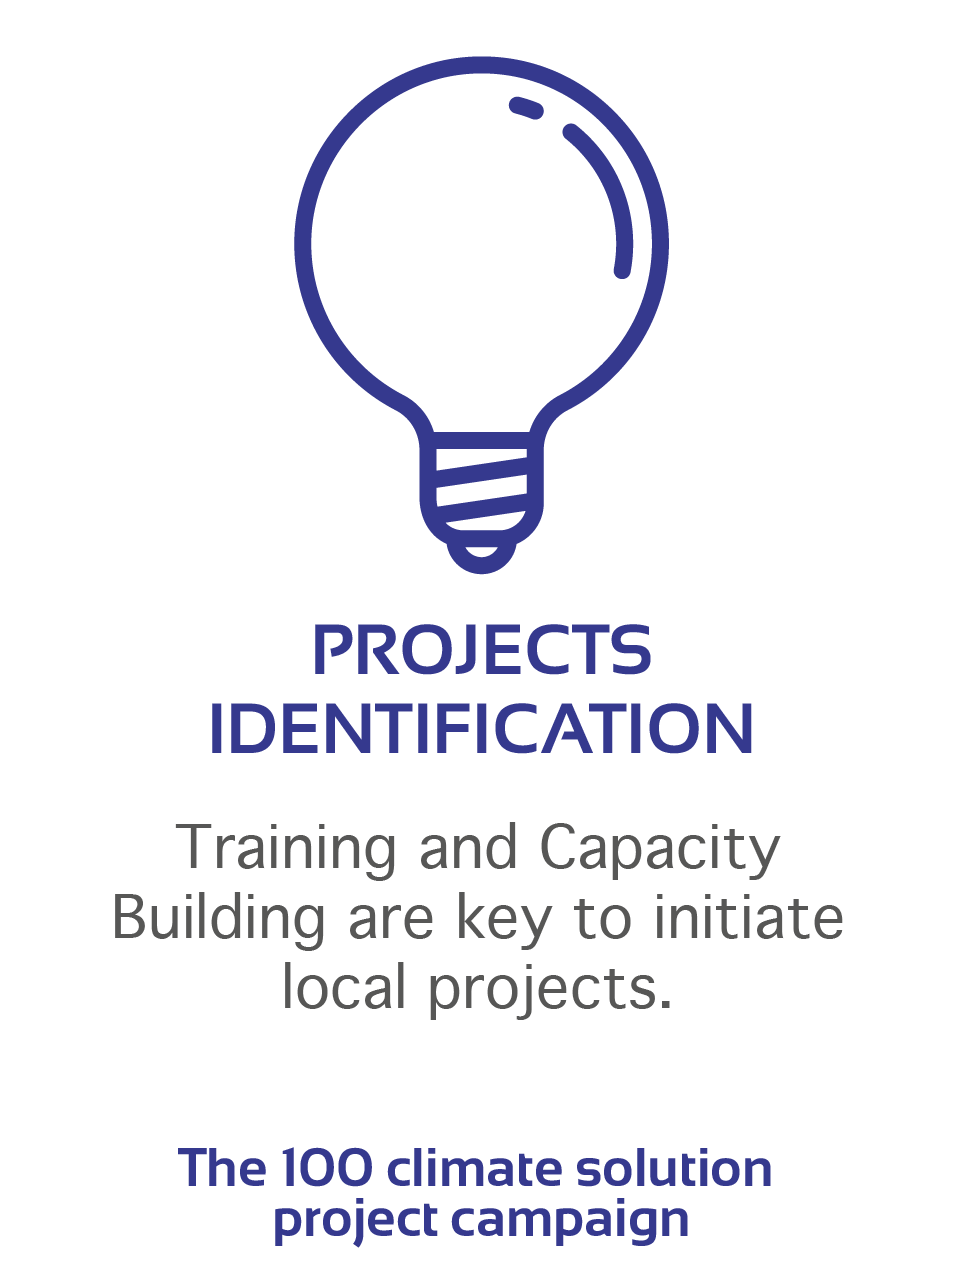 R20-picto-projects-identification-01-1